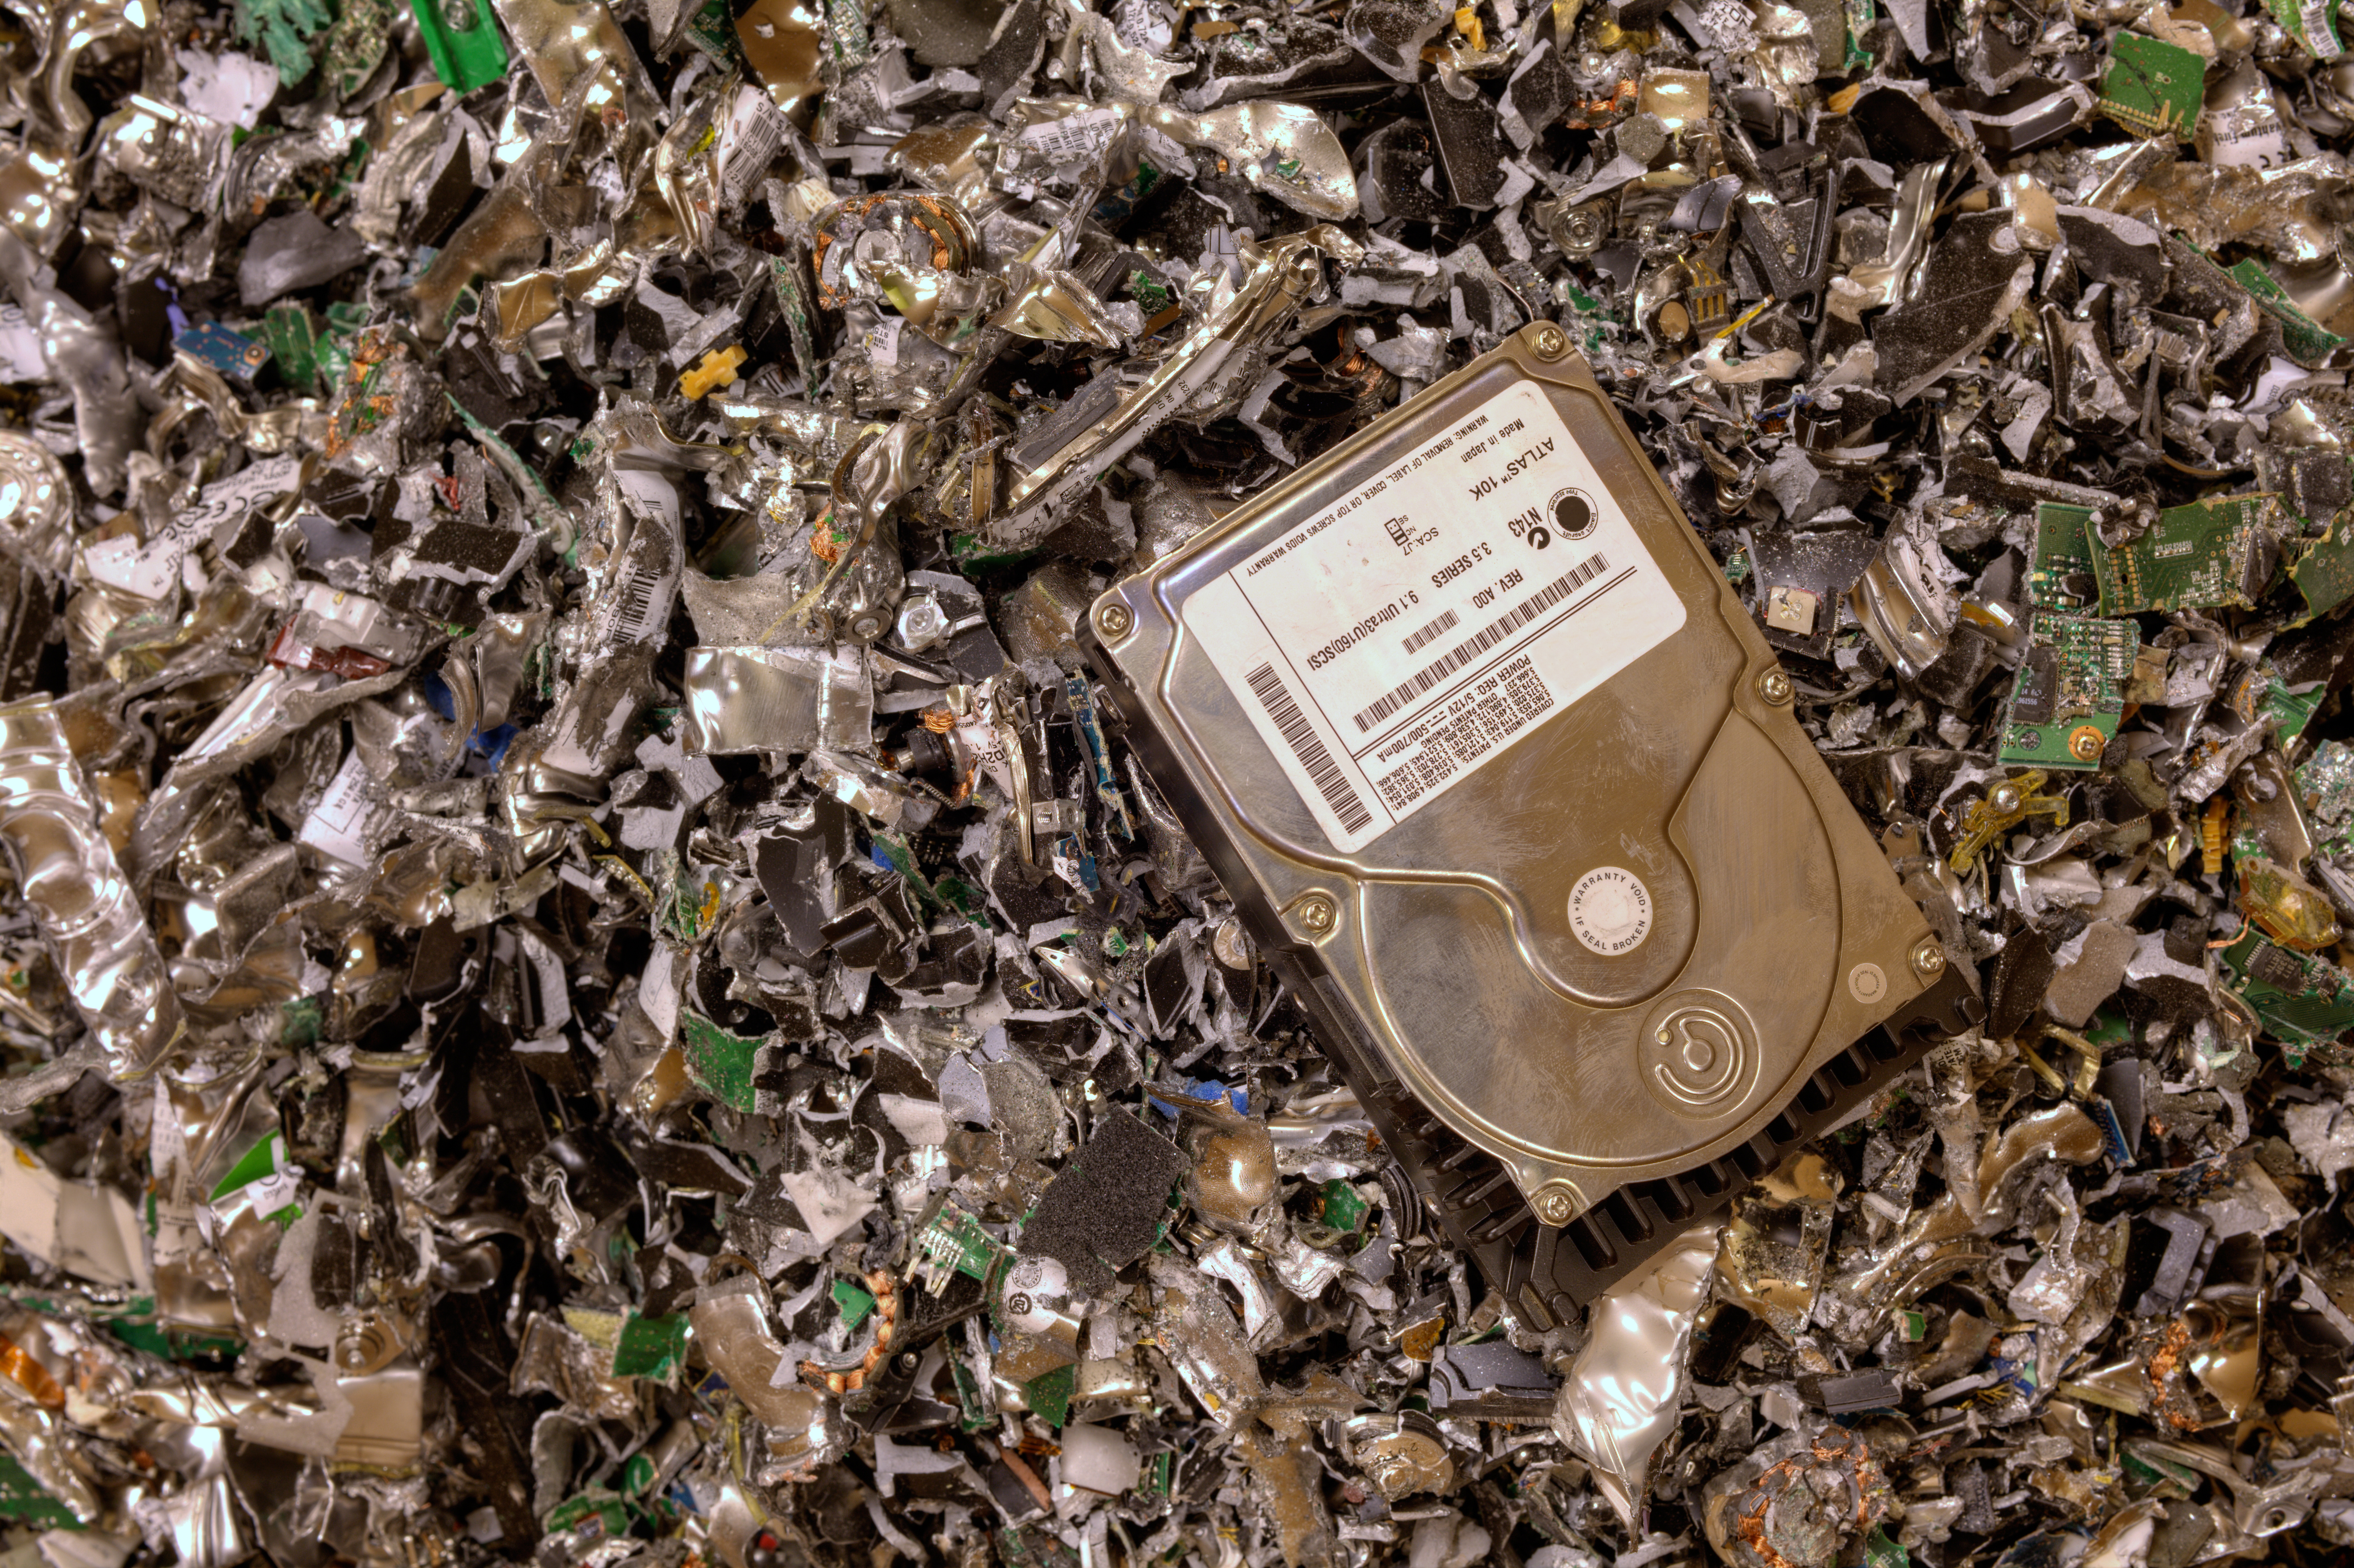 We offer secure data destruction through the use of a hard drive shredder